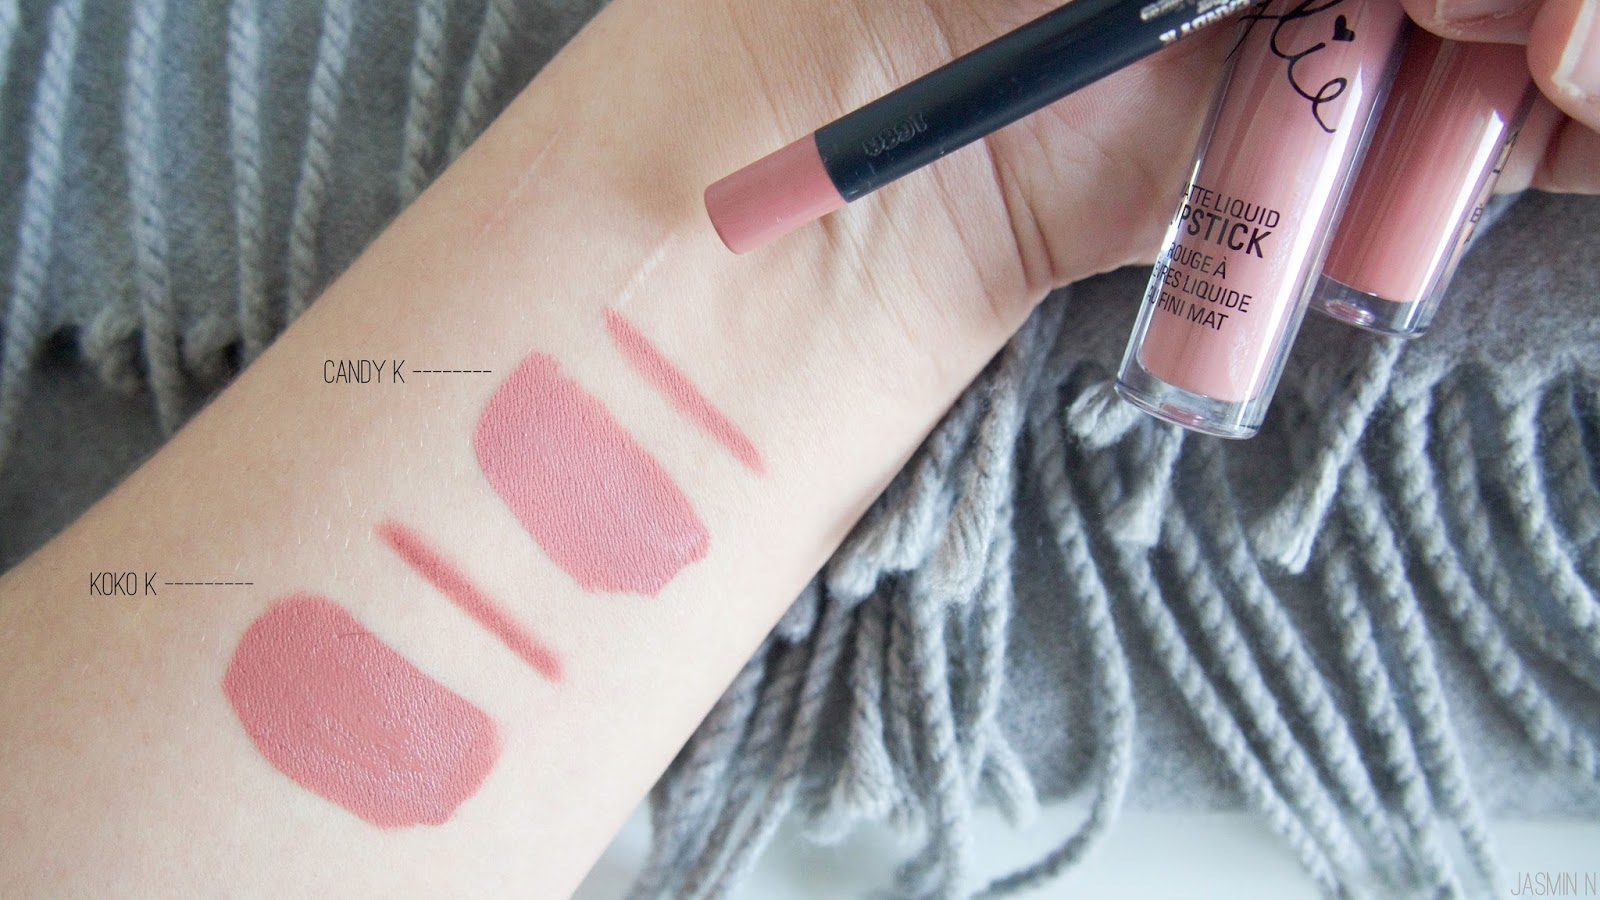 Koko K Candy Kylie Cosmetics Little Things With Jassy Lipstick For You Who Already Dont Know Lip Kits Include Matte Liquid And A Liner To Go It Nicely Both In The Same Package 29 Sign